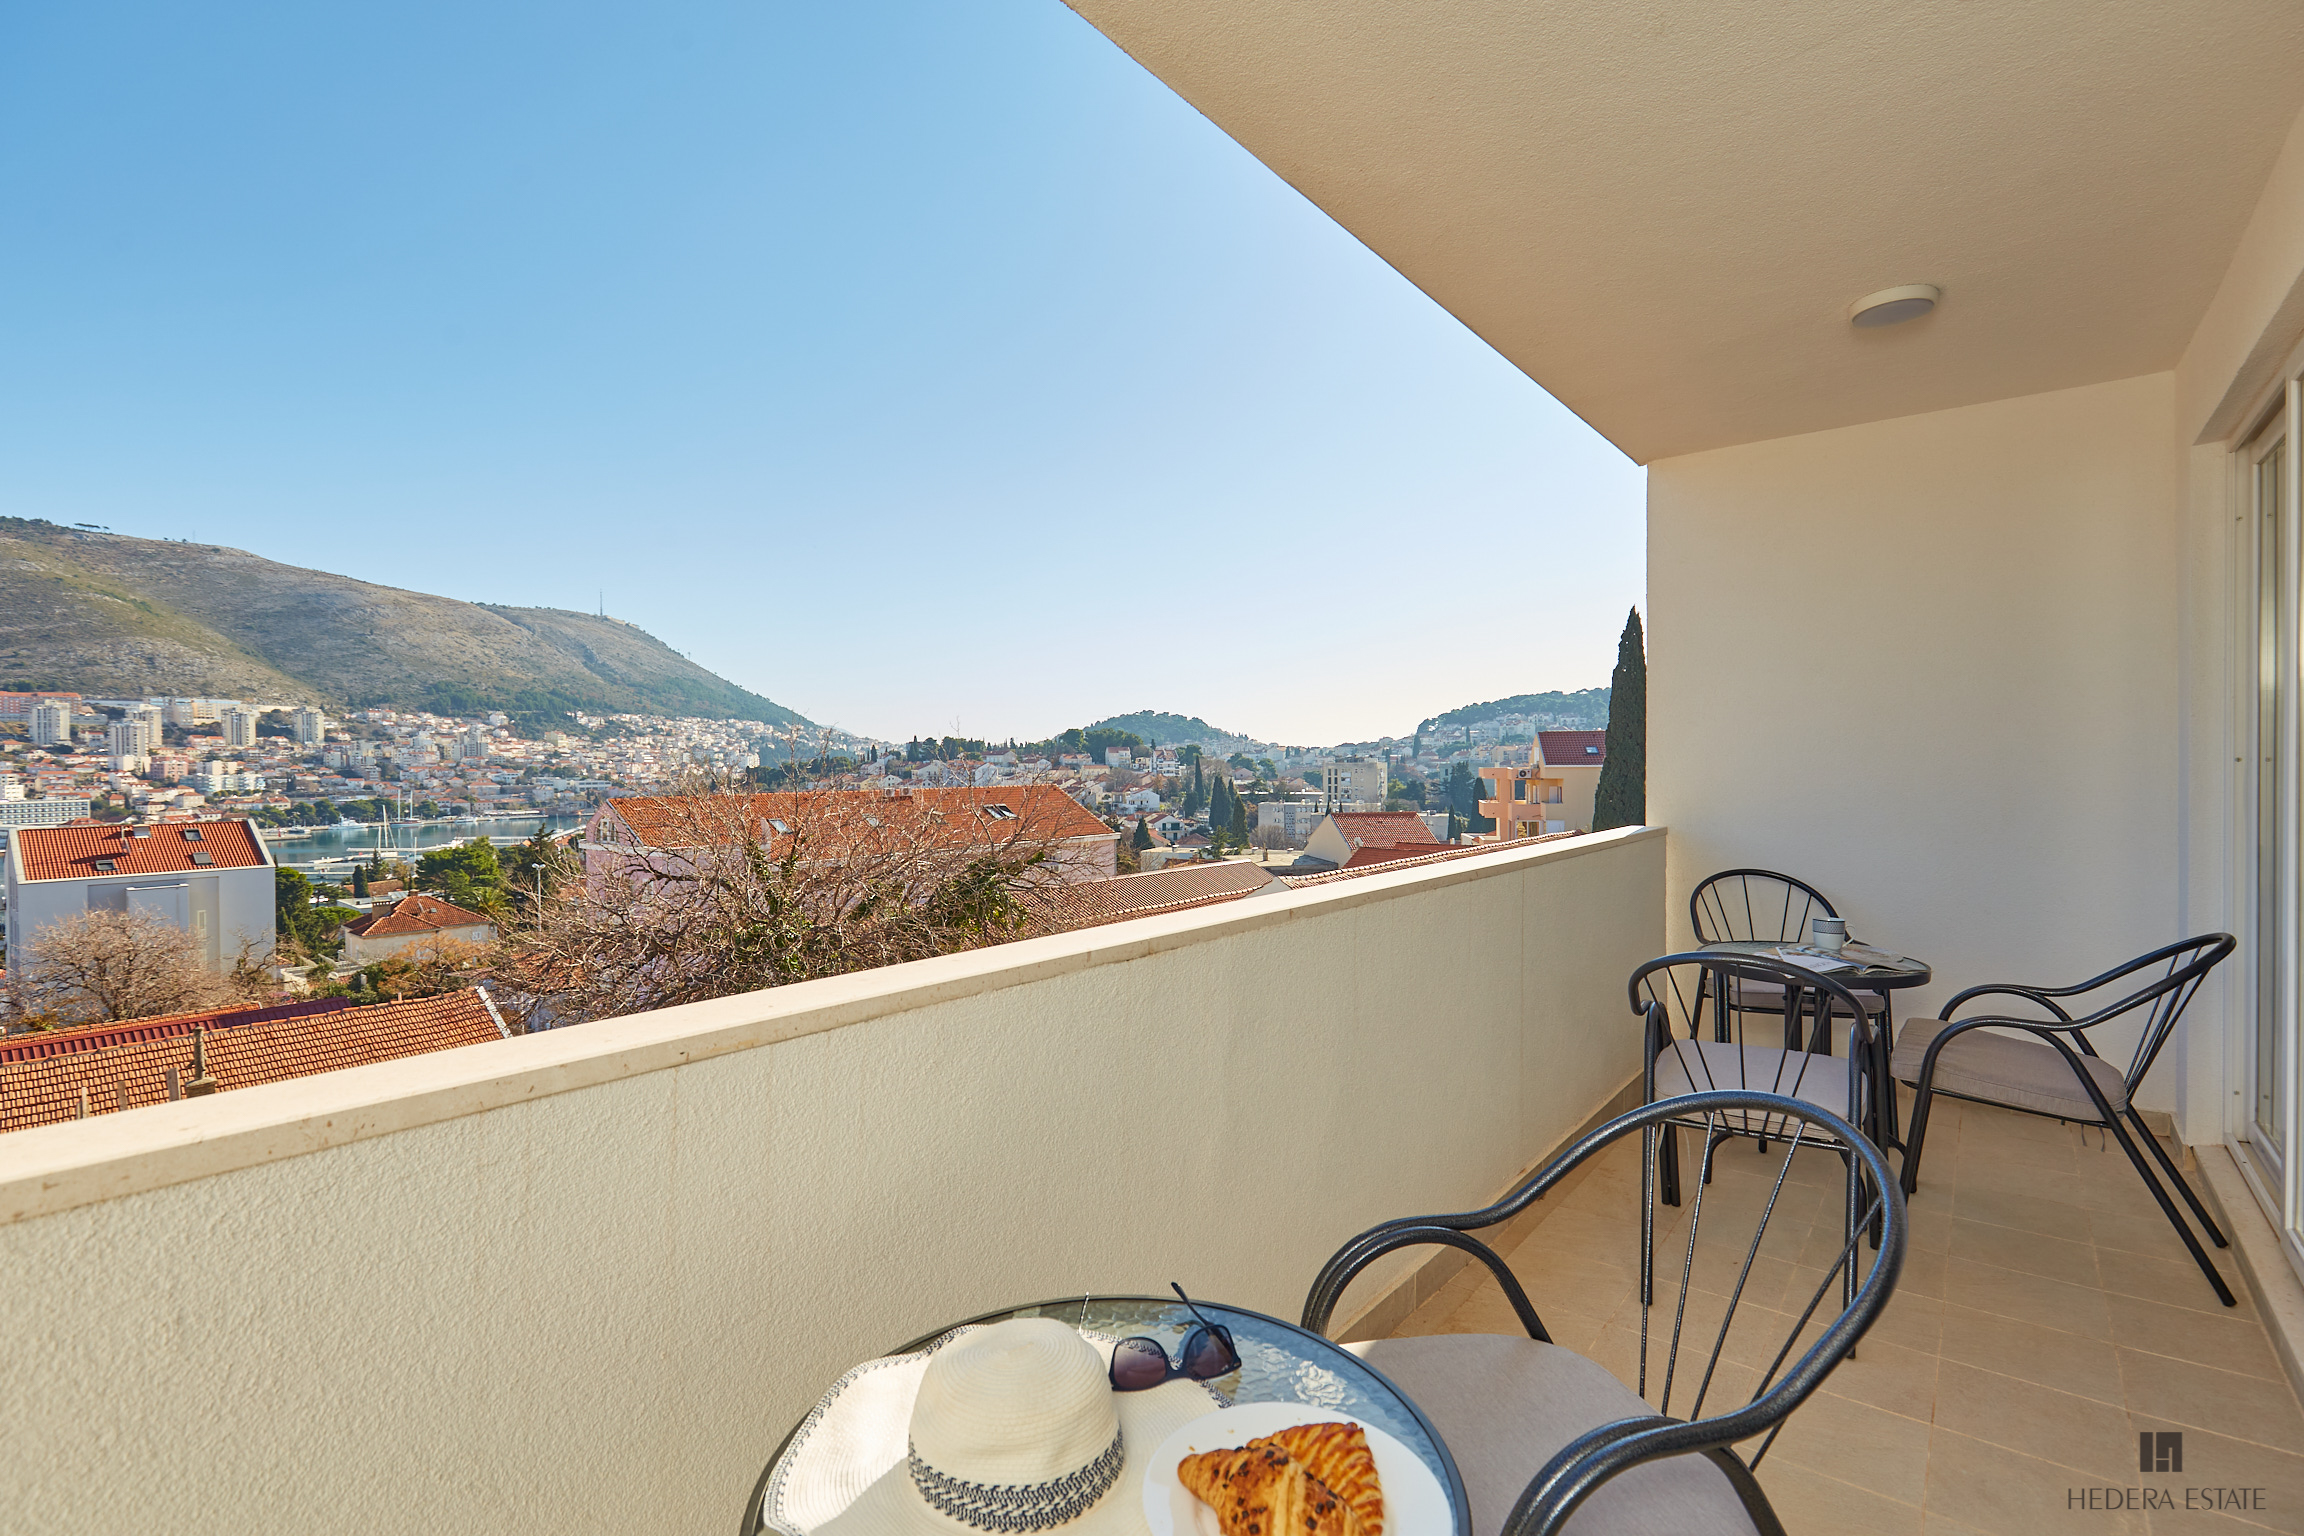 <p>Sleeps 7<br />4 bedrooms<br />2 bathrooms<br />Kitchen, dining area and living room<br />Balcony with sea view<br />Distance to Old Town: 10 minutes by bus<br />Distance to Lapad bay:5 minutes walk</p>